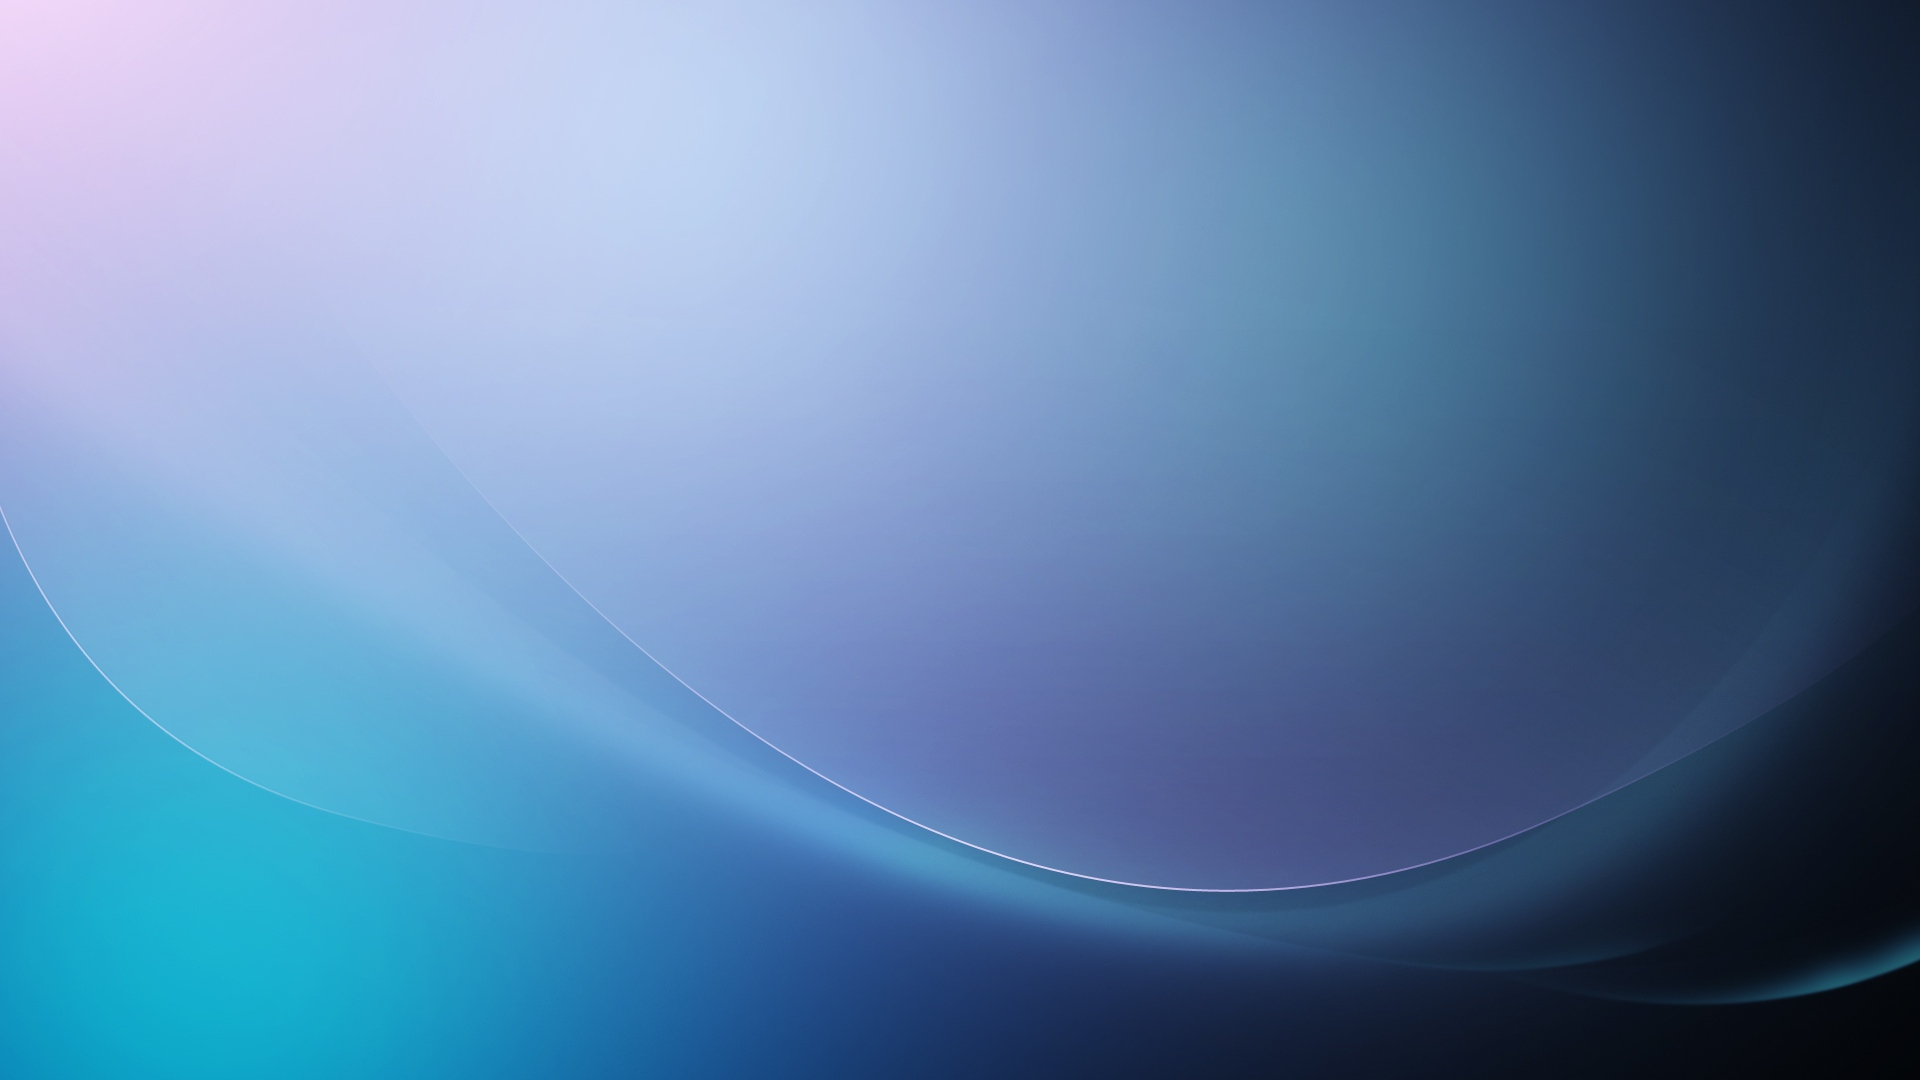 Gradient computer wallpaper